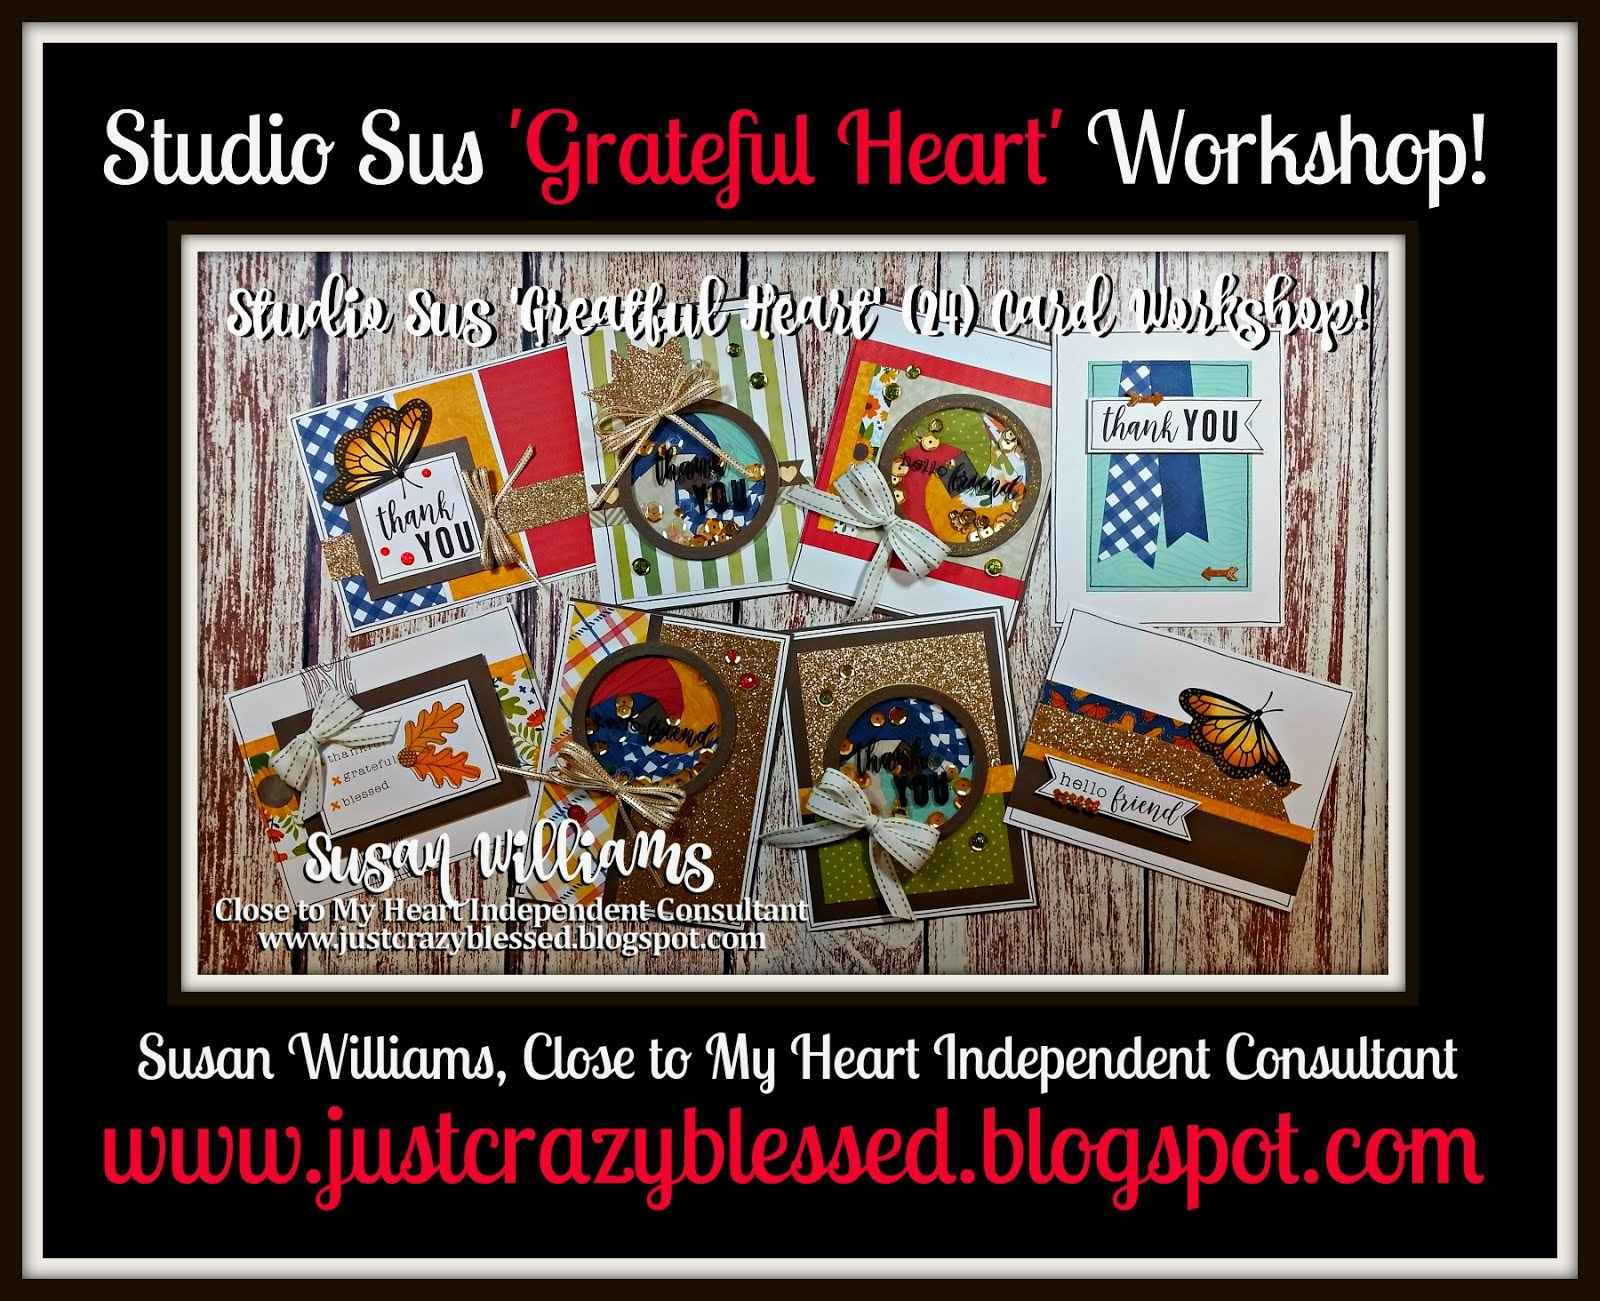 'Grateful Heart' Cardmaking Workshop!